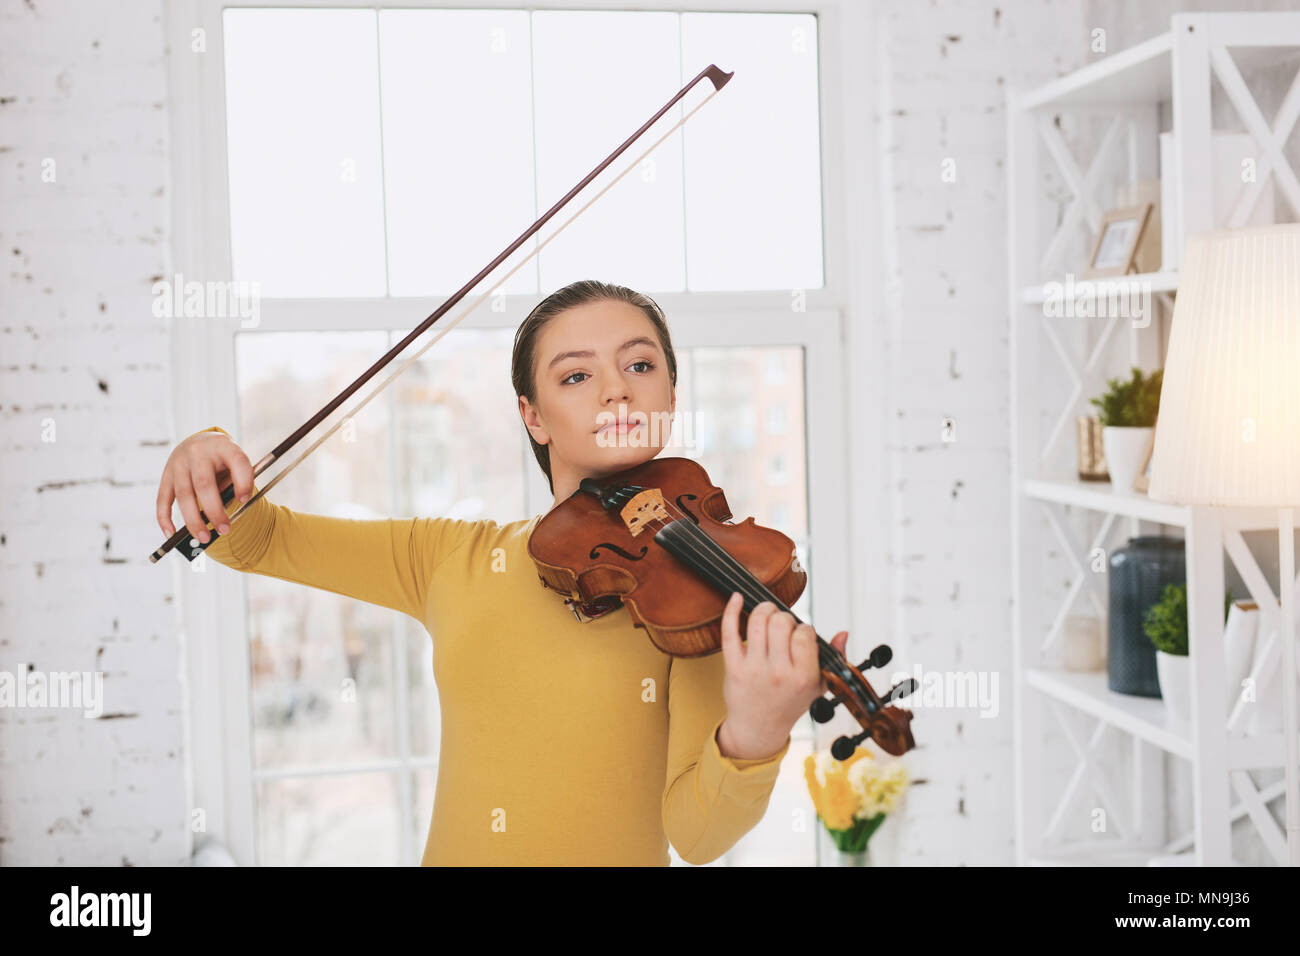 Professional musician dreaming about concert - Stock Image